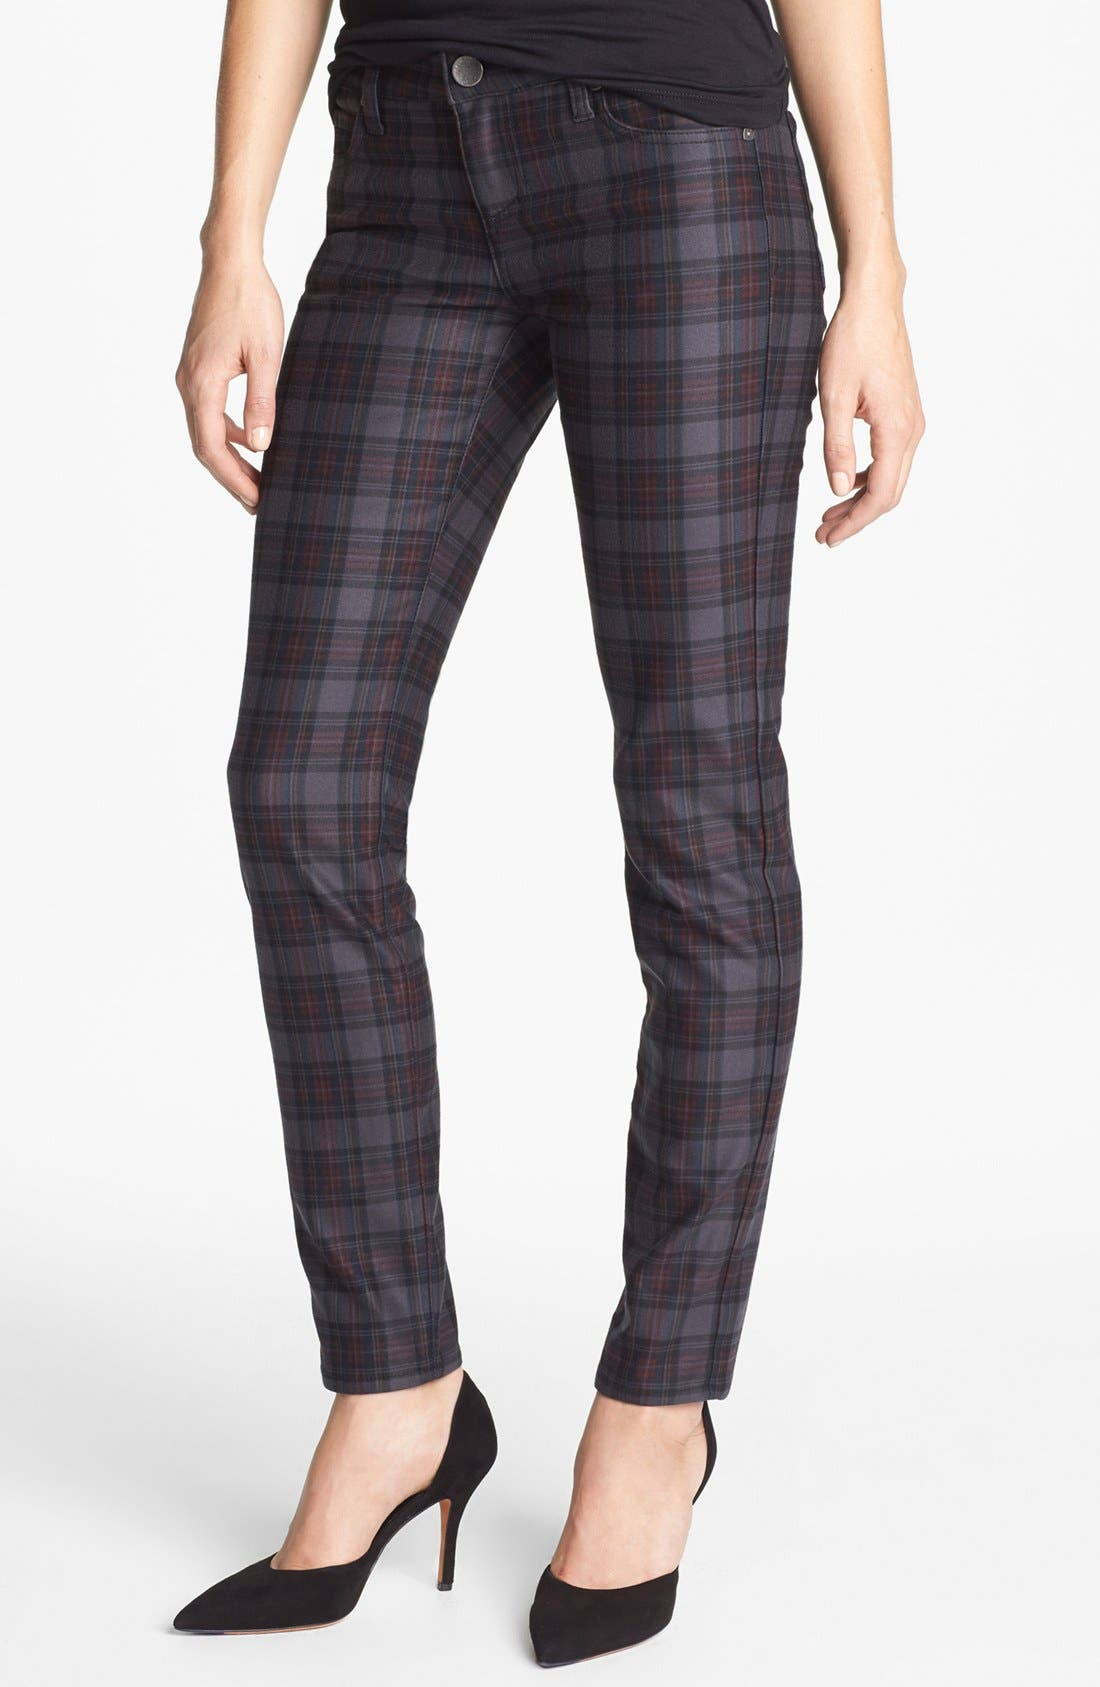 Alternate Image 1 Selected - KUT from the Kloth 'Mia' Plaid Toothpick Skinny Jeans (Grey)